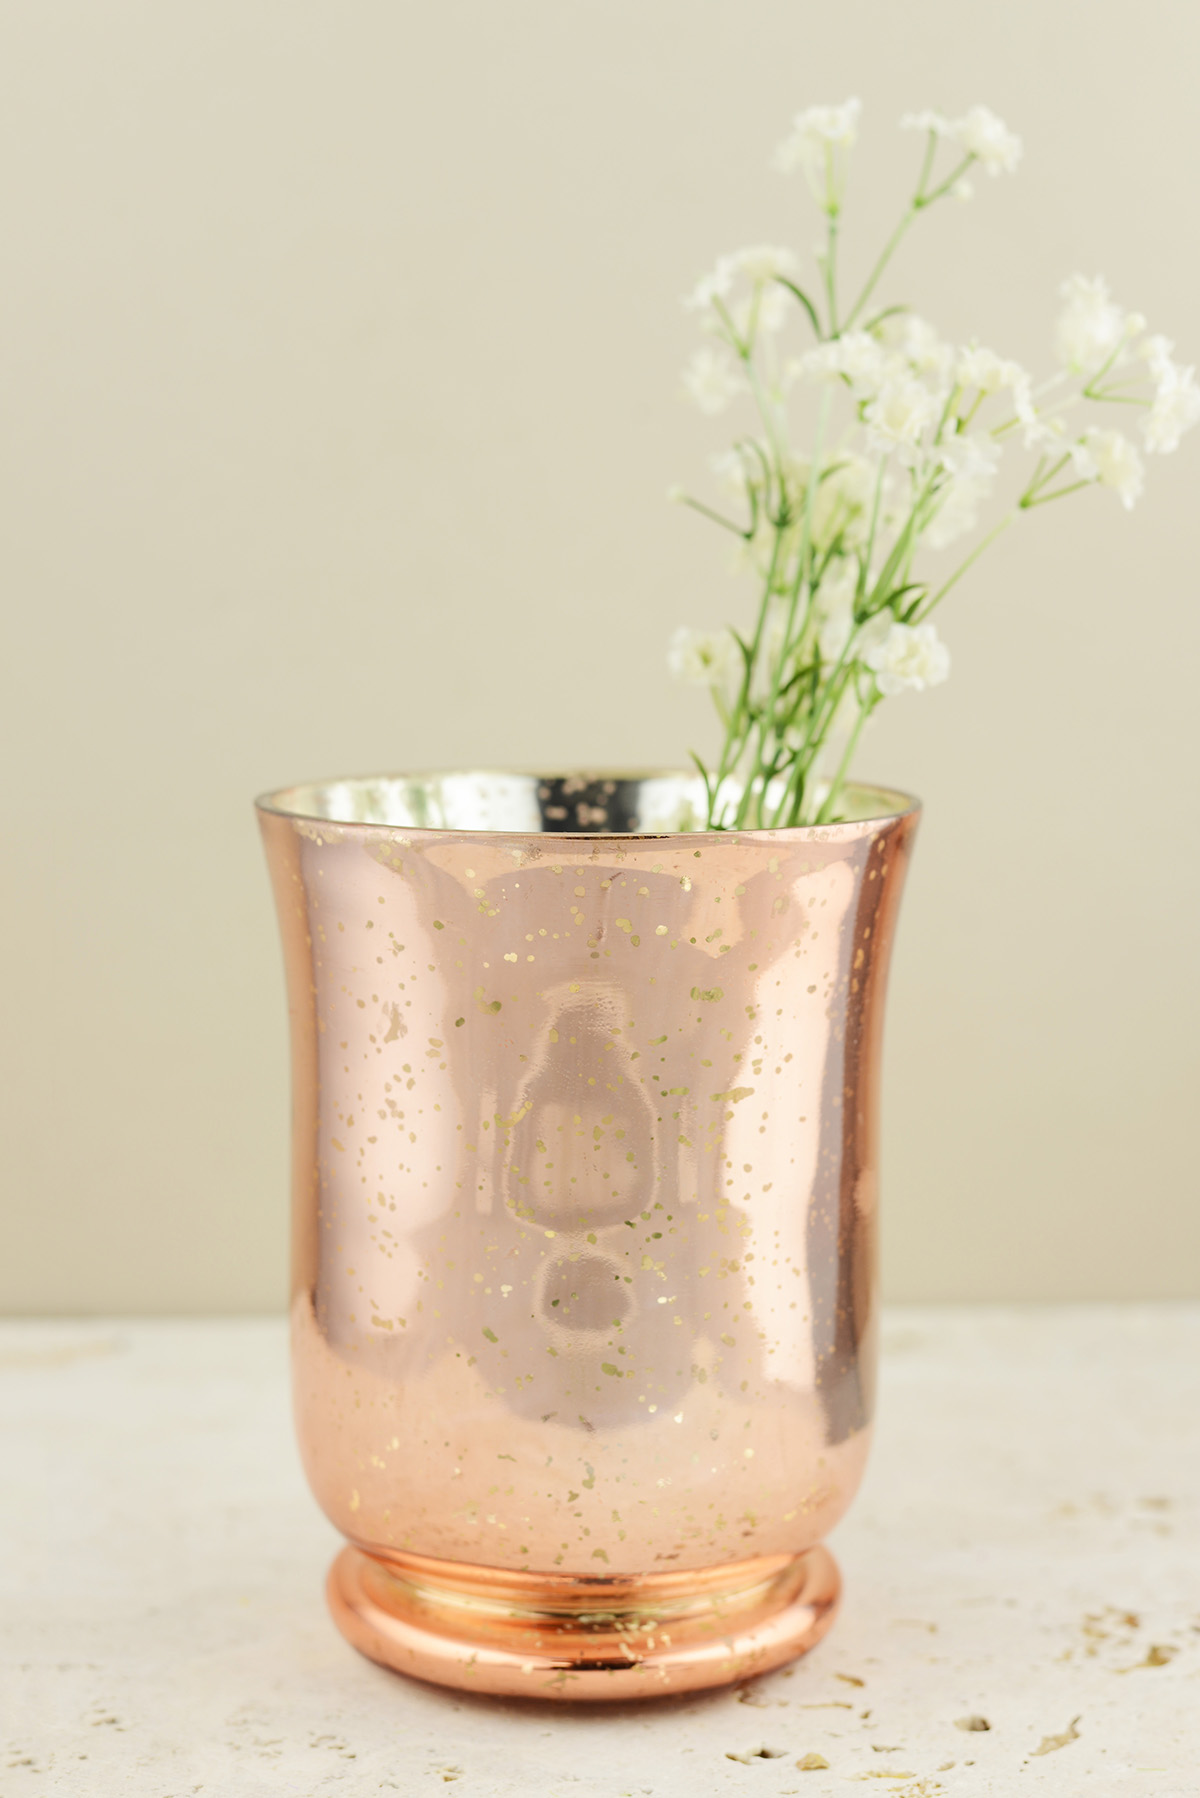 Blush Rose Gold Mercury Glass Vase & Candleholder 6 inch - Walmart.com